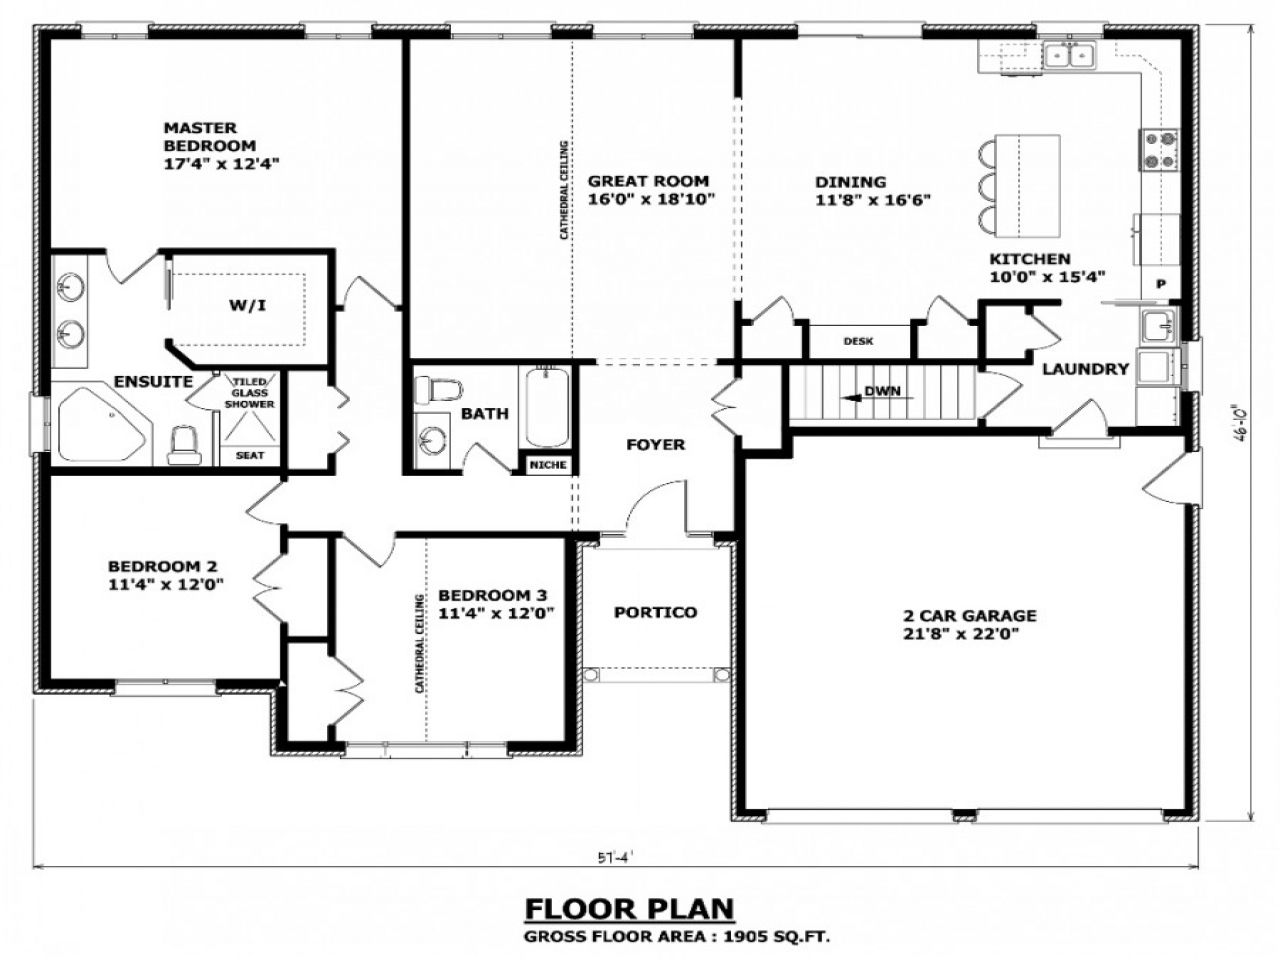 This Is Perfect No Formal Living Room Or Formal Dining Room And There Is A Window Over The Ki Bungalow Floor Plans 4 Bedroom House Plans Bungalow House Plans